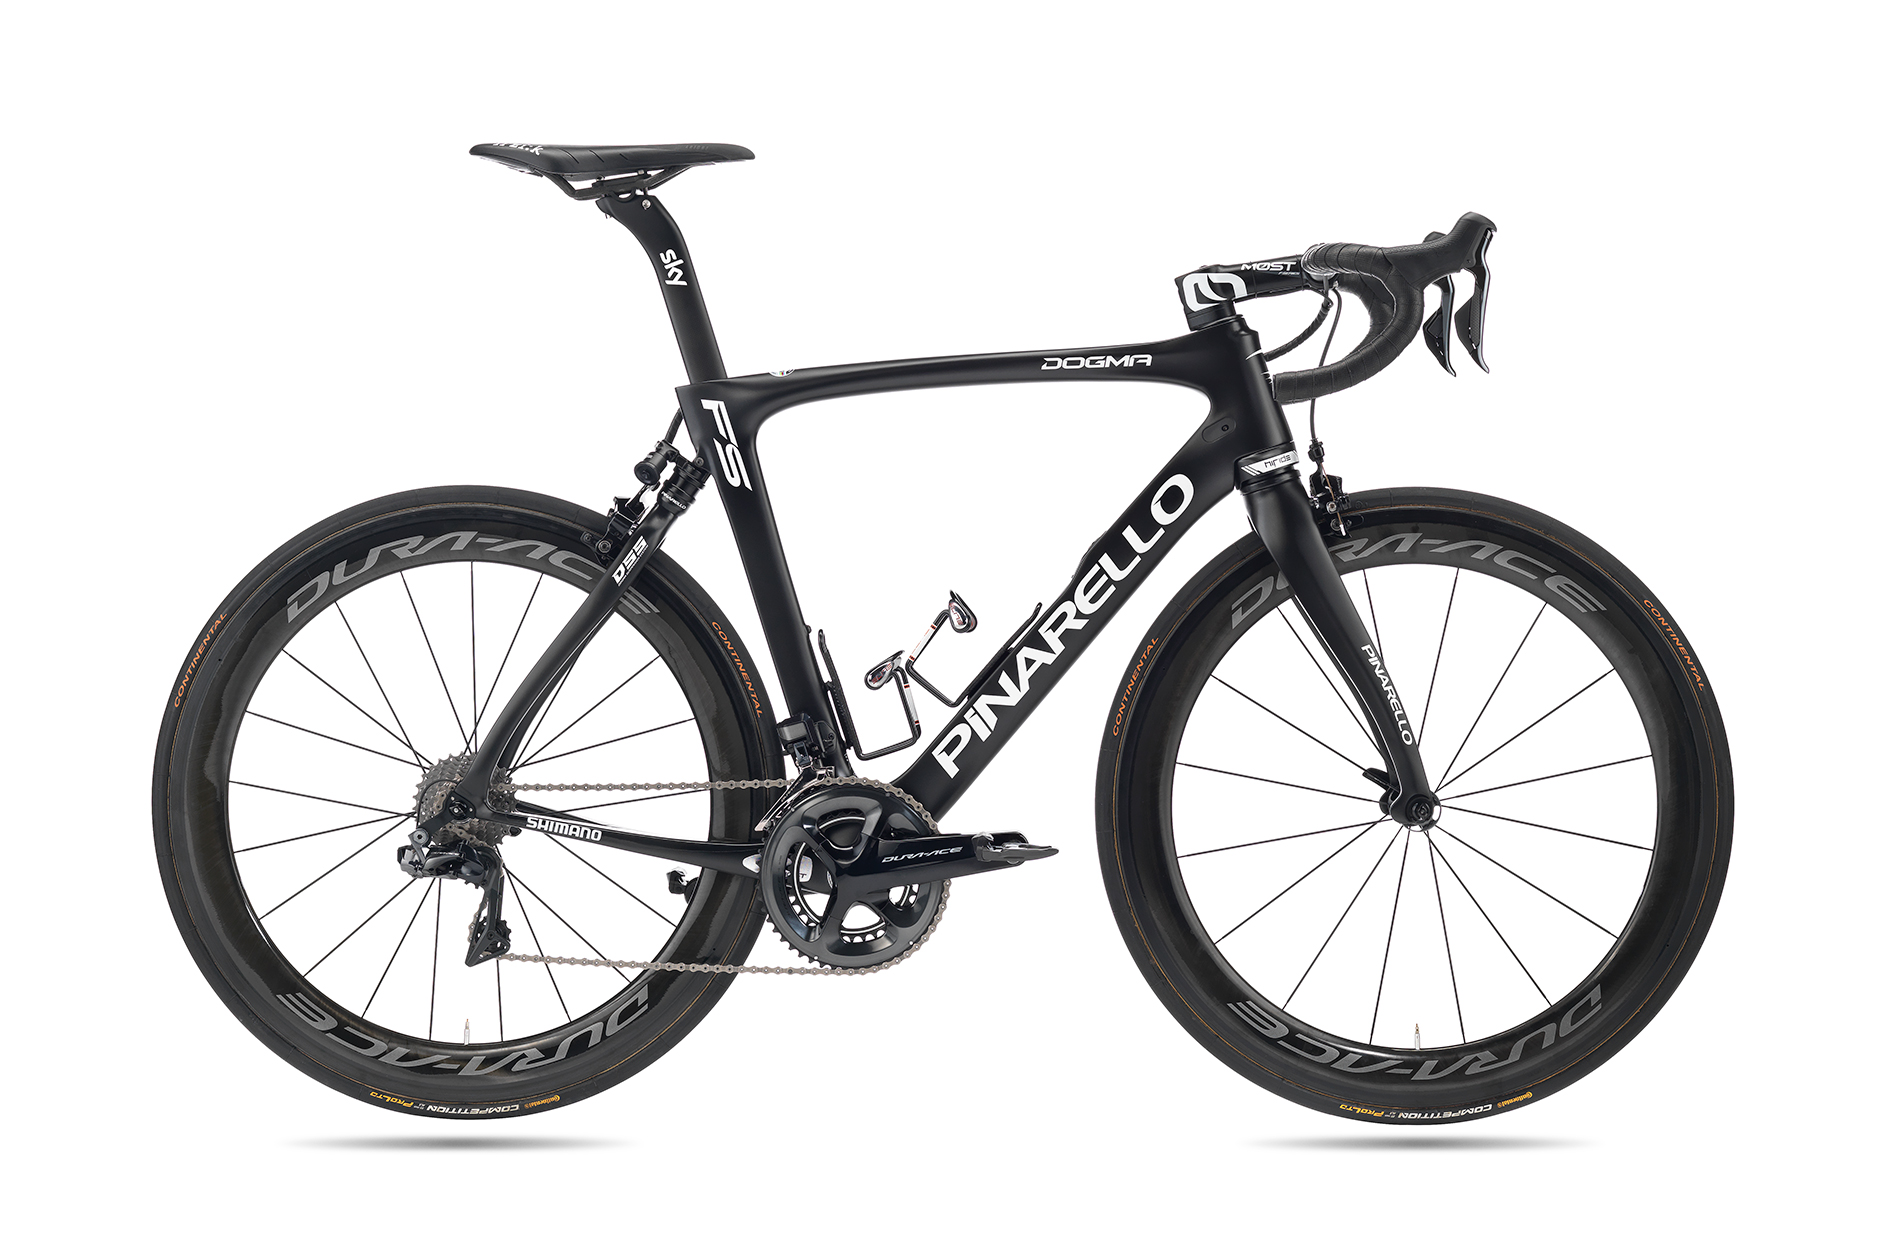 Pinarello Launches Dogma FS with Electronic Self-adjusting Suspension 10